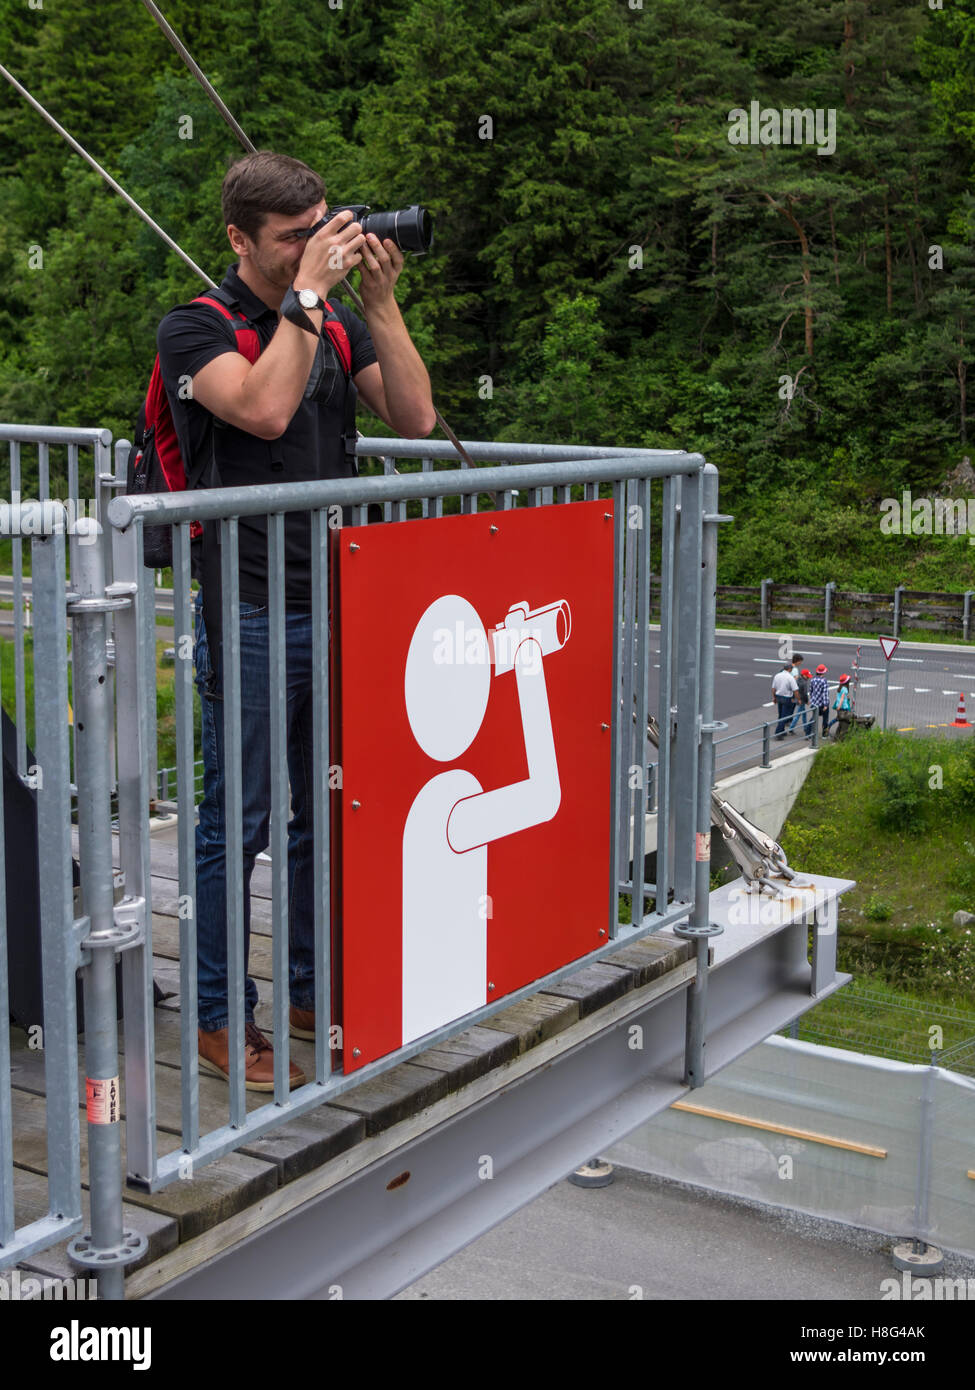 Young caucasian male taking a picture with his camera from a viewpoint designated with a large viewpoint sign. Canton - Stock Image